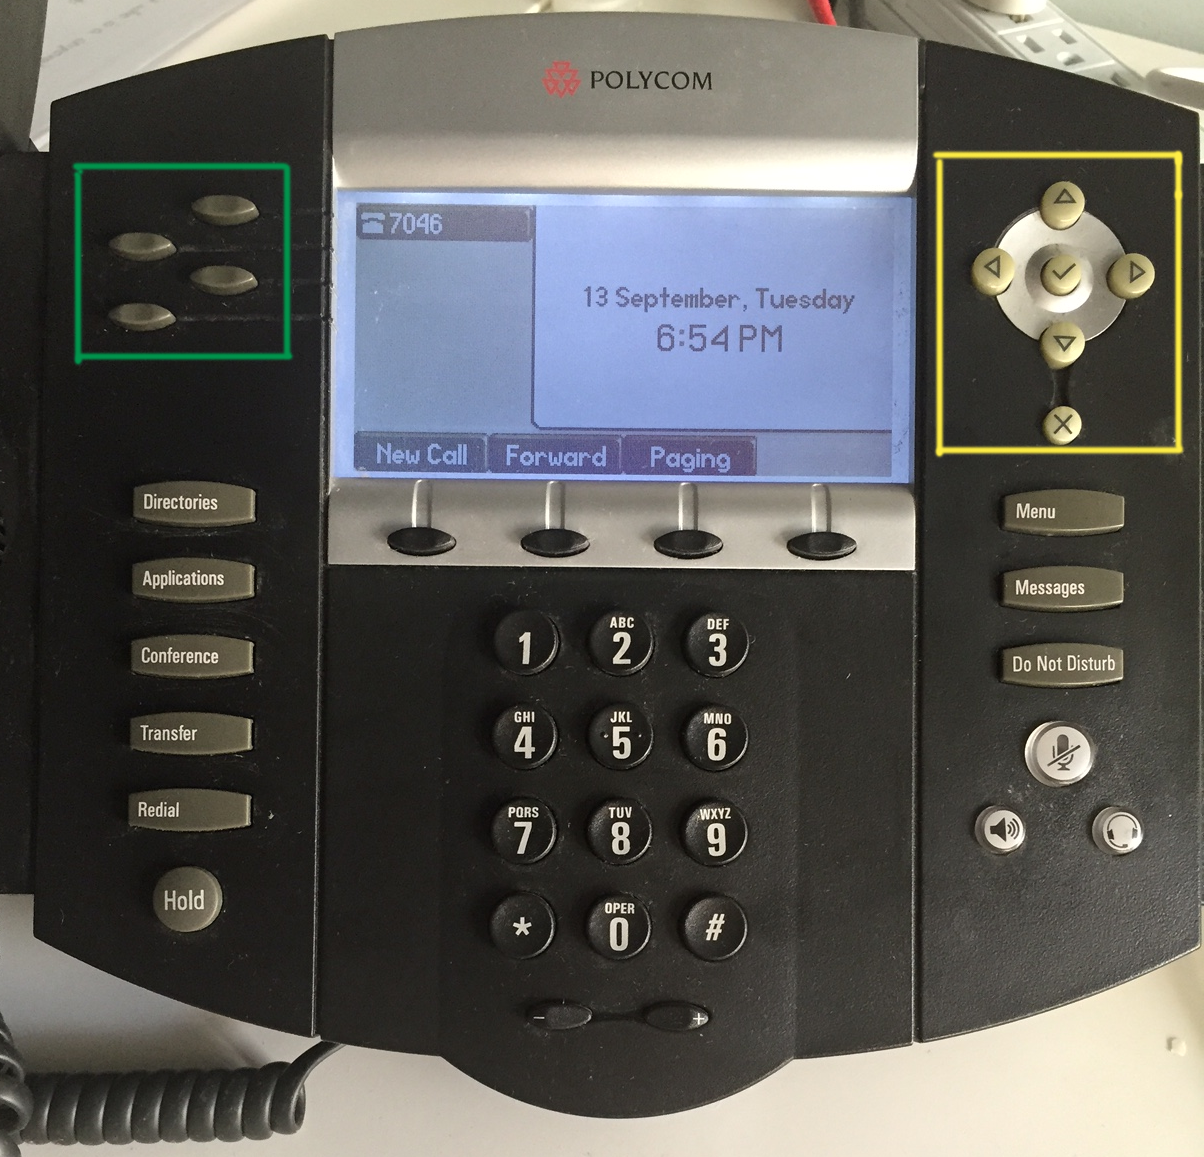 VoIP business line keys on a Polycom desk phone